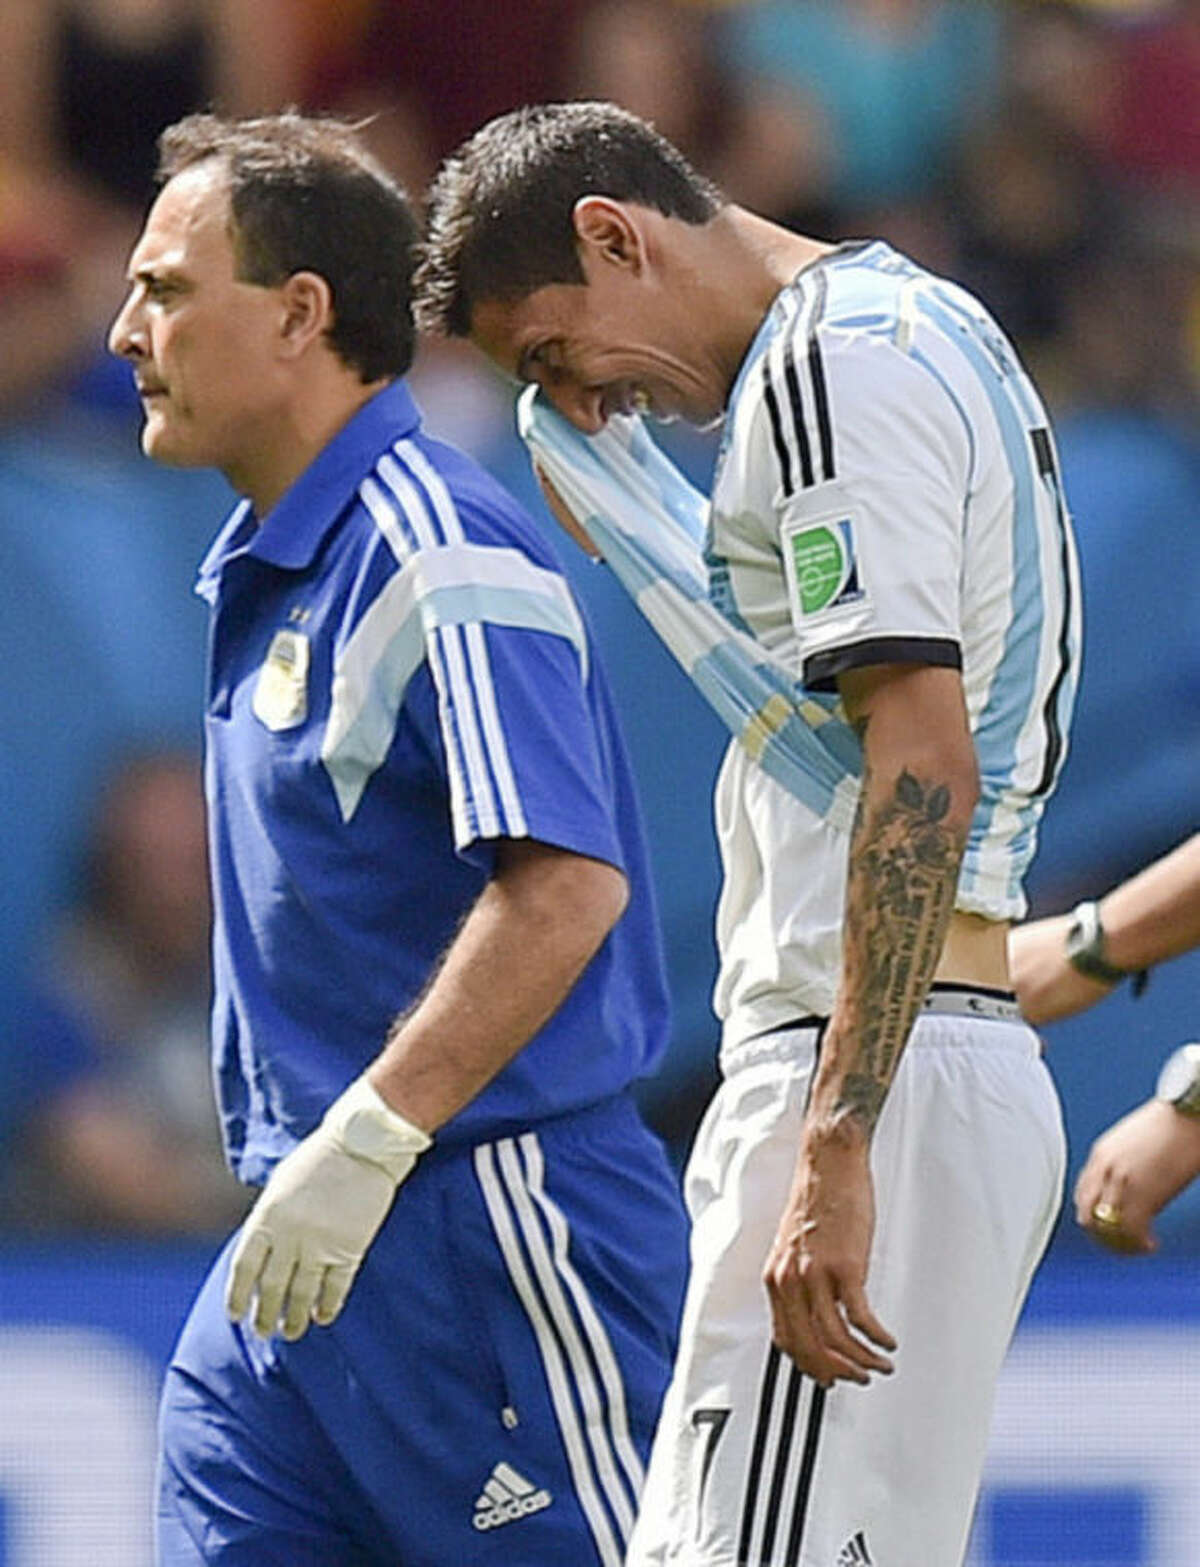 Argentina's Angel di Maria, right, leaves the field with an injury during the World Cup quarterfinal soccer match between Argentina and Belgium at the Estadio Nacional in Brasilia, Brazil, Saturday, July 5, 2014. (AP Photo/Martin Meissner)